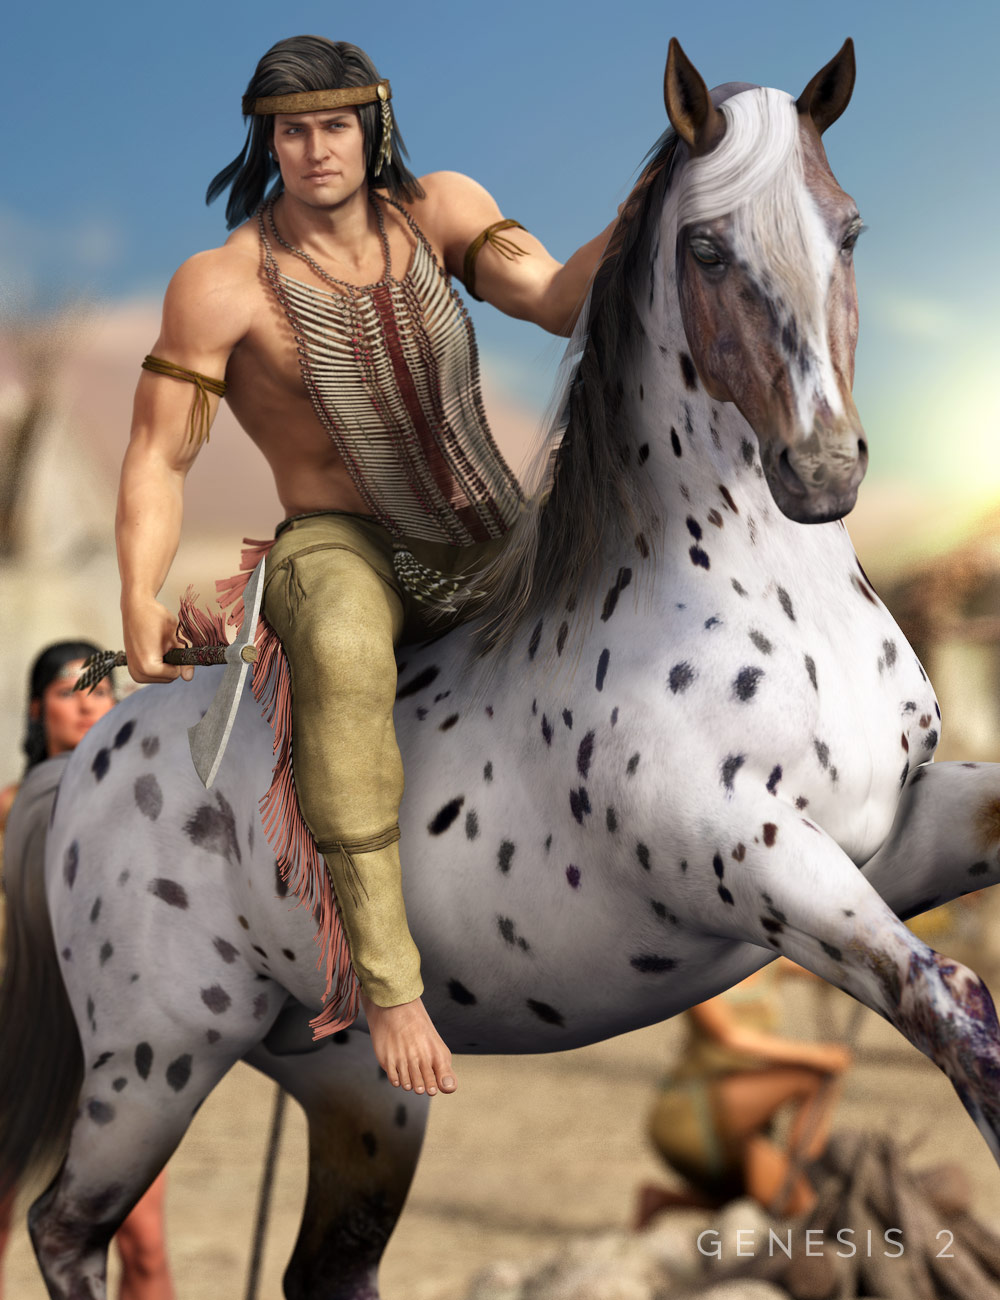 Courageous Warrior for Genesis 2 Male(s) by: Barbara BrundonSarsa, 3D Models by Daz 3D